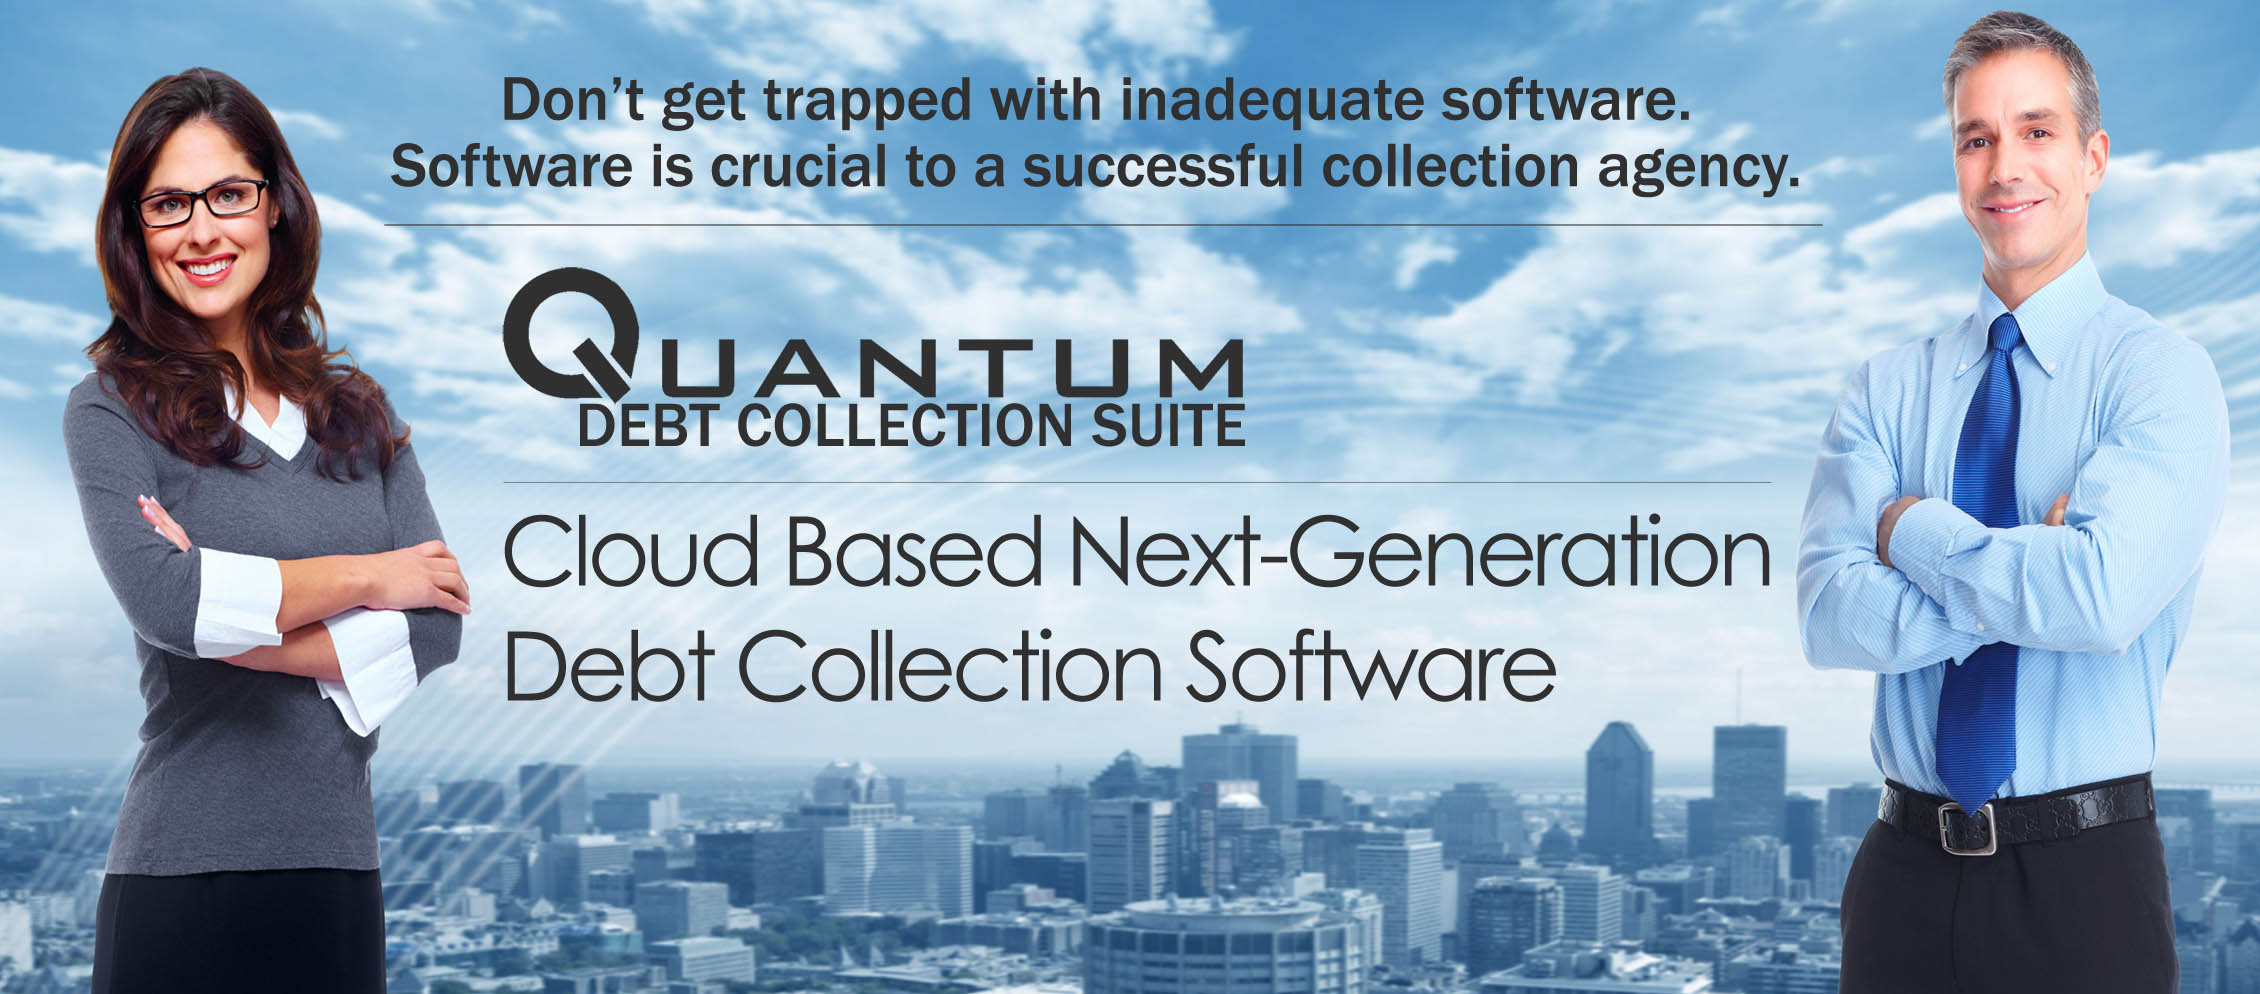 Quantum Cloud Based Debt Collection Software